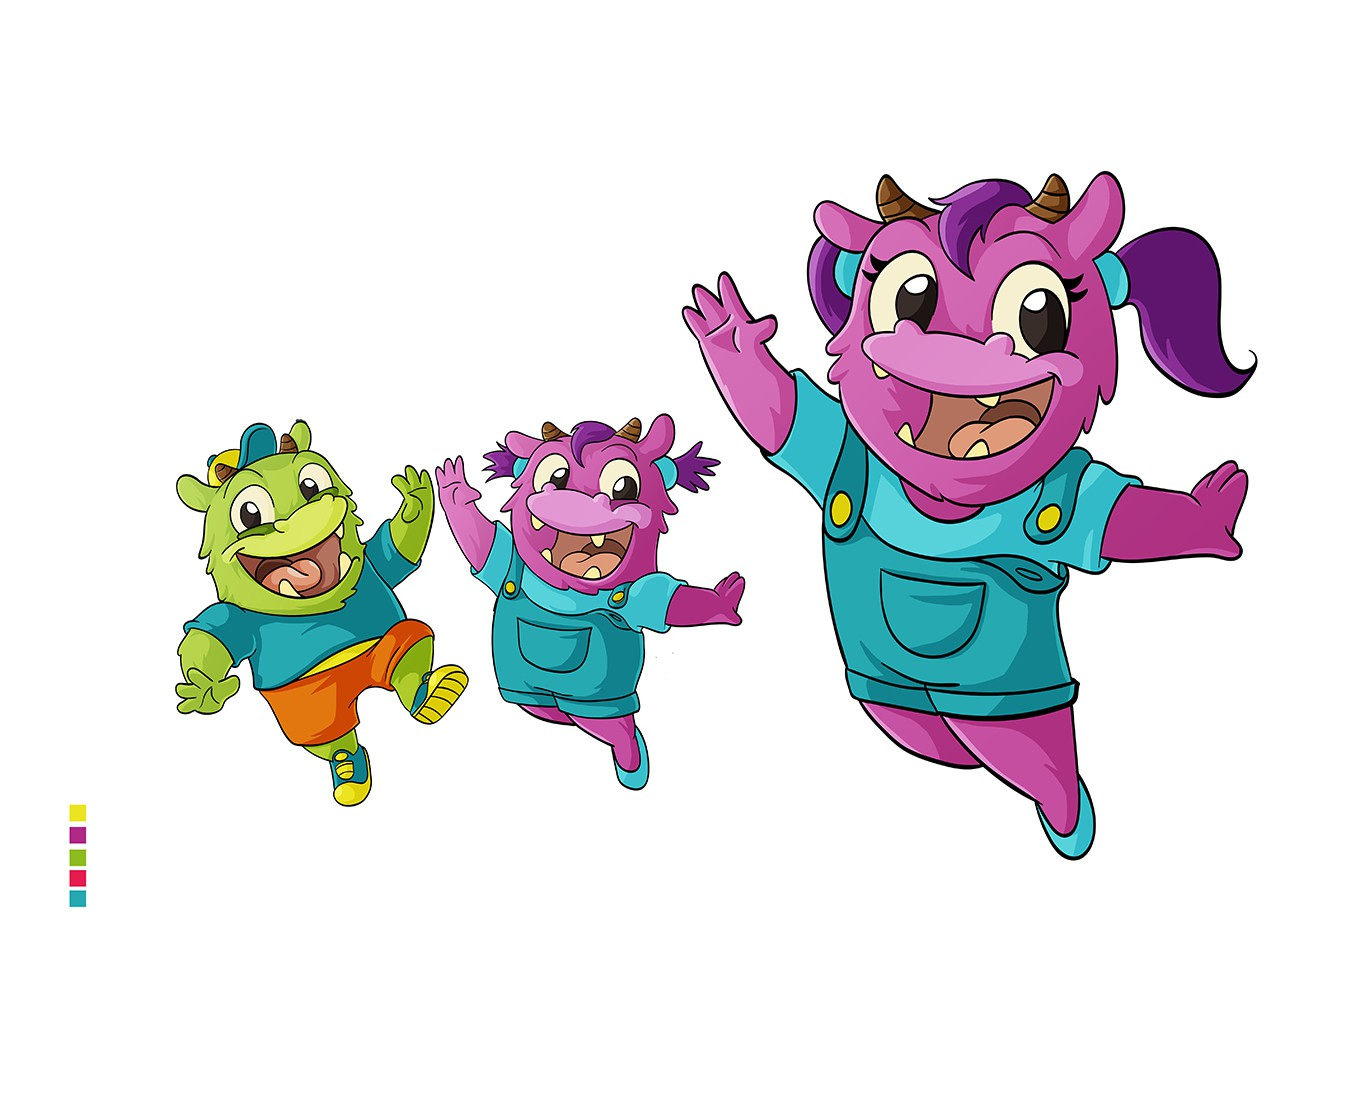 We need 2 mascots for Kids